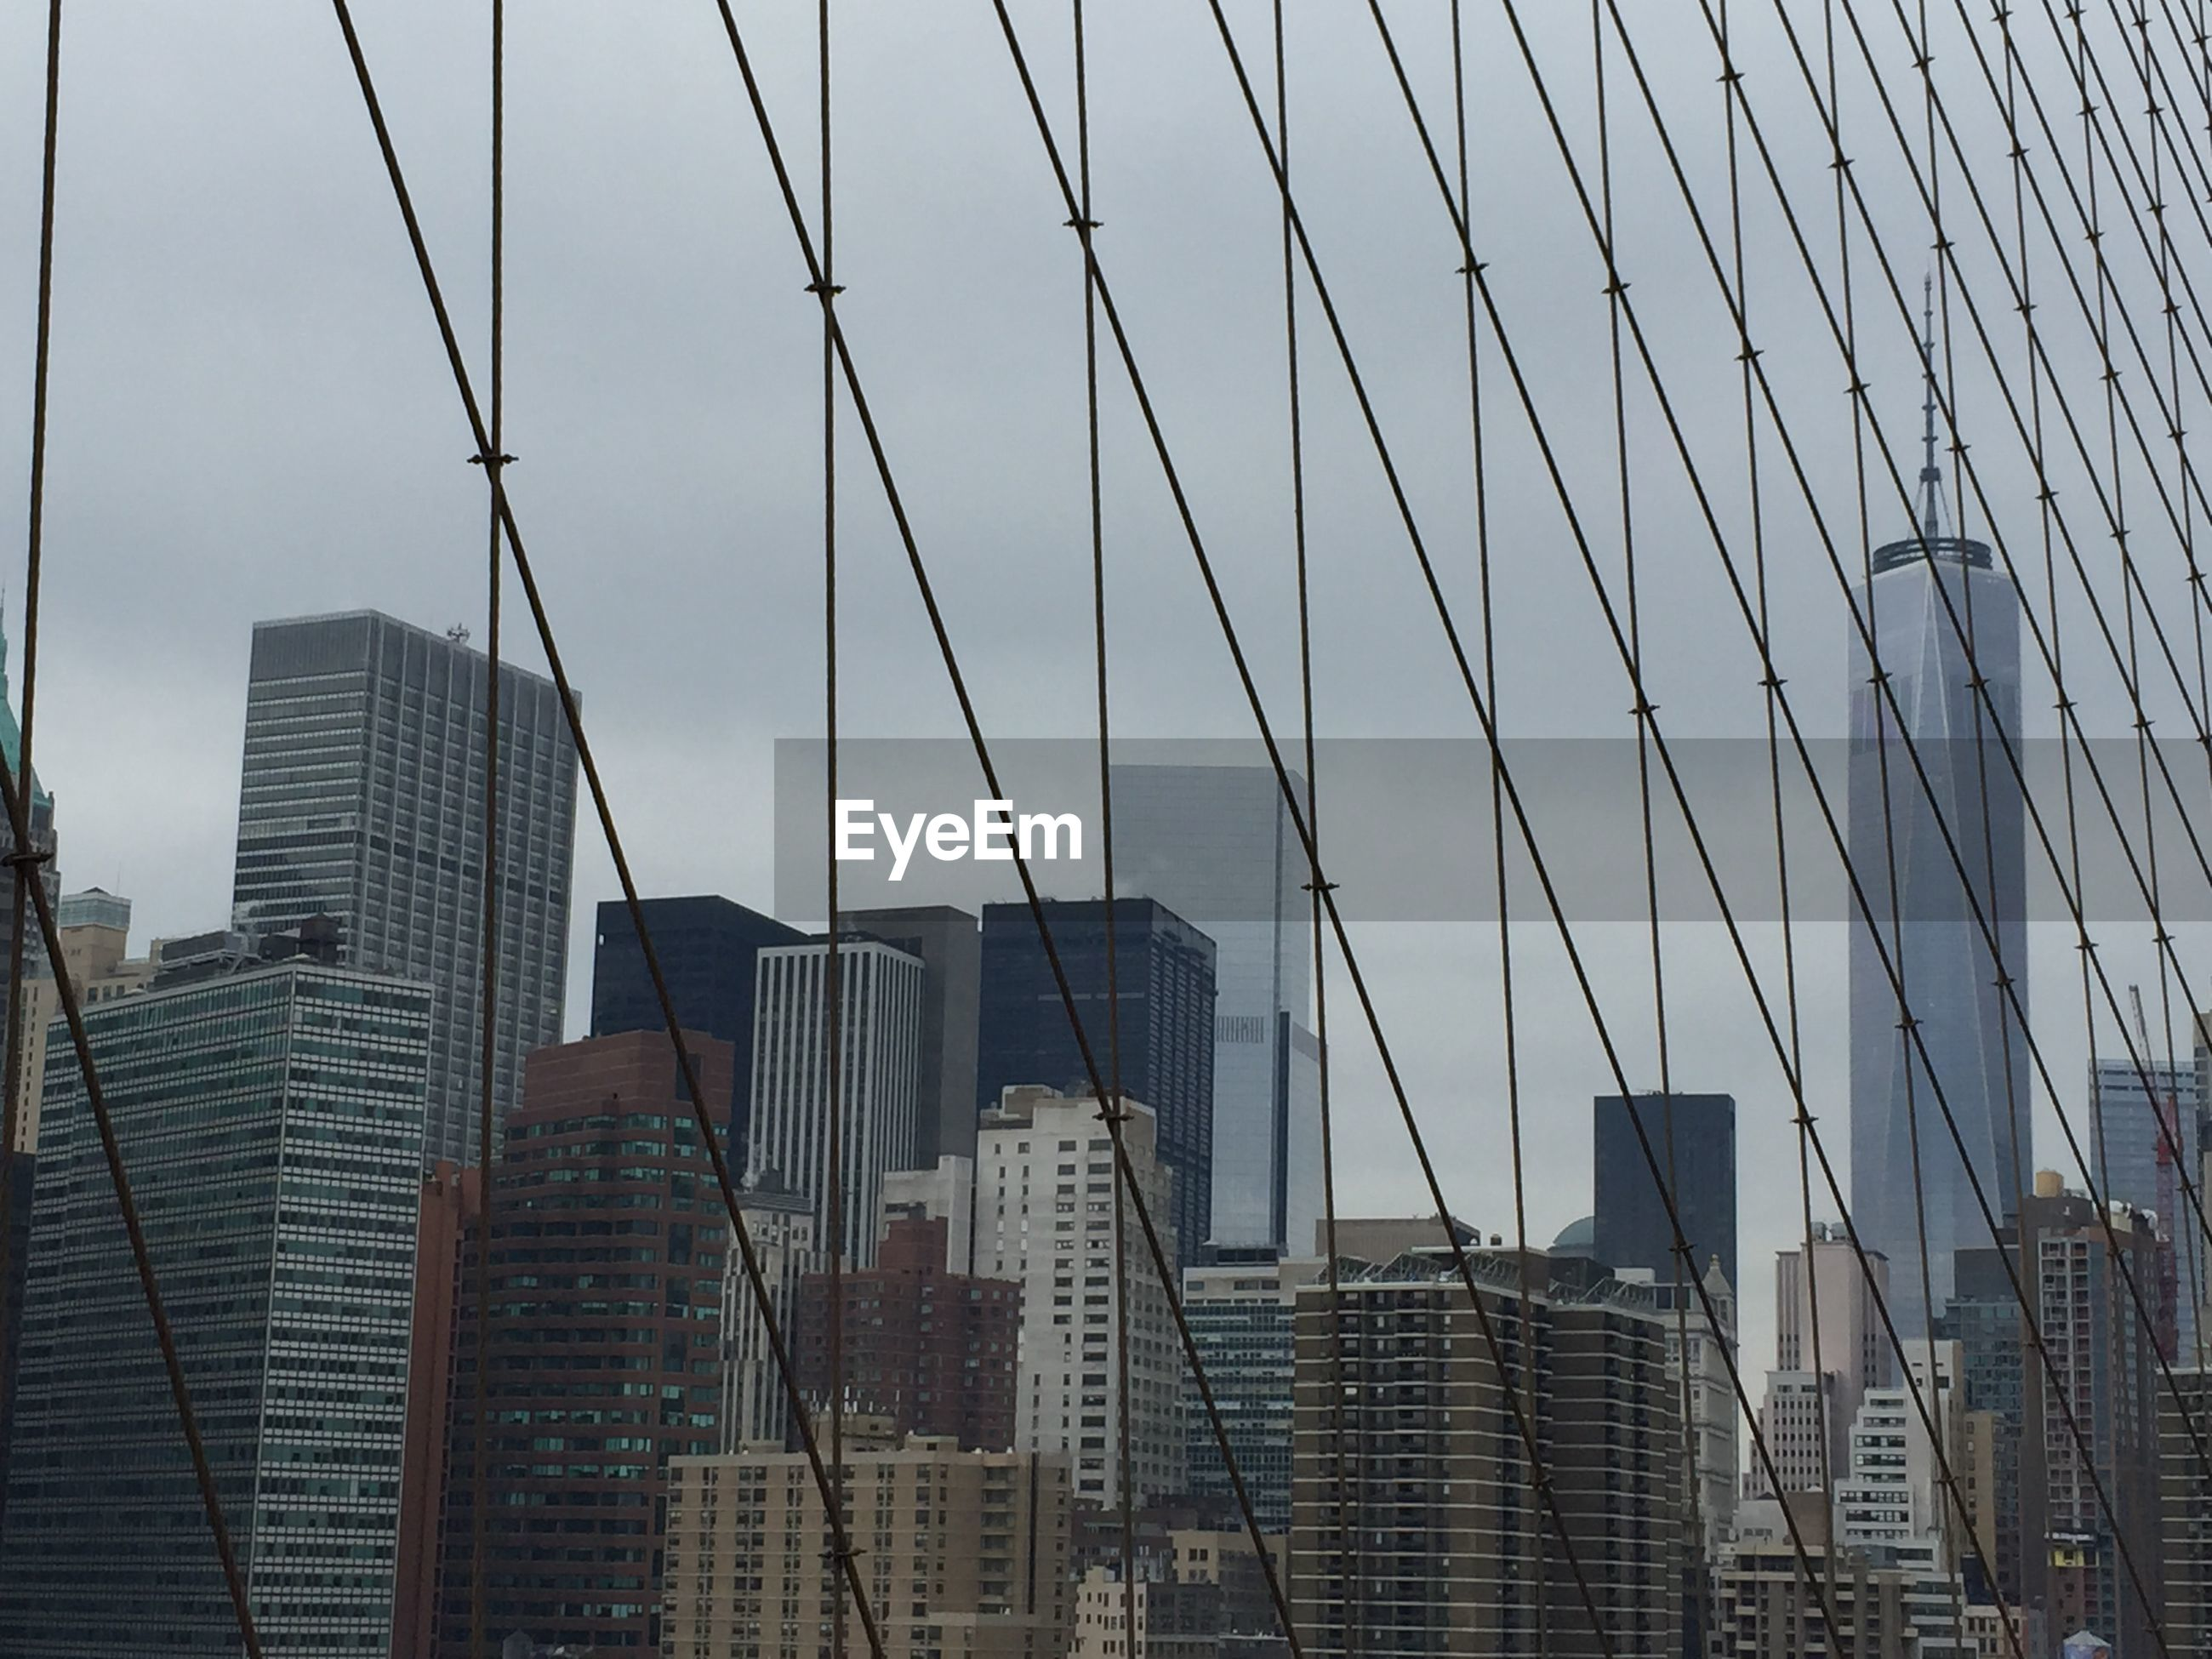 Cityscape seen through steel cables